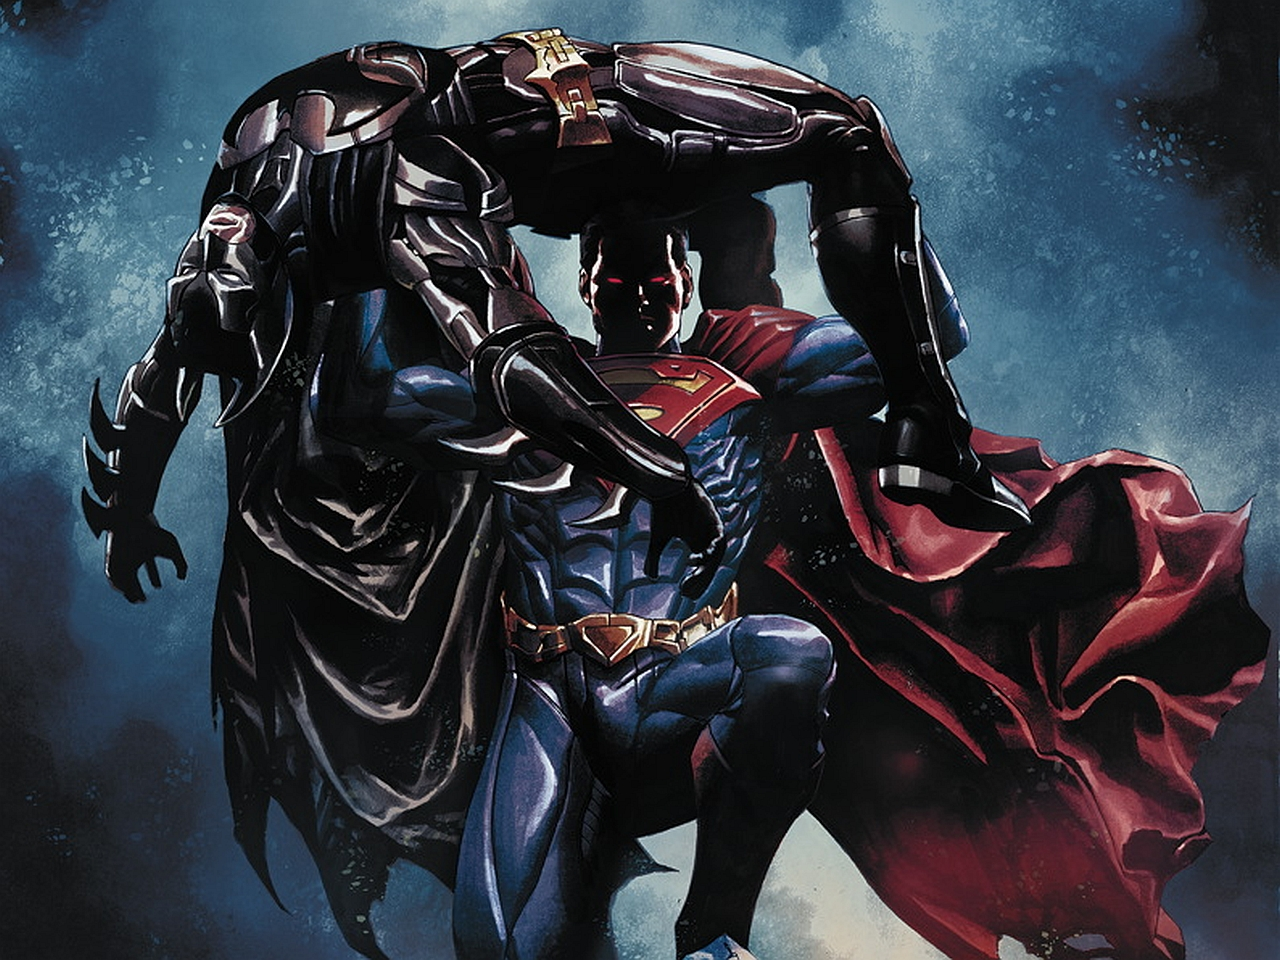 12 Injustice Gods Among Us HD Wallpapers Backgrounds   Wallpaper 1280x960